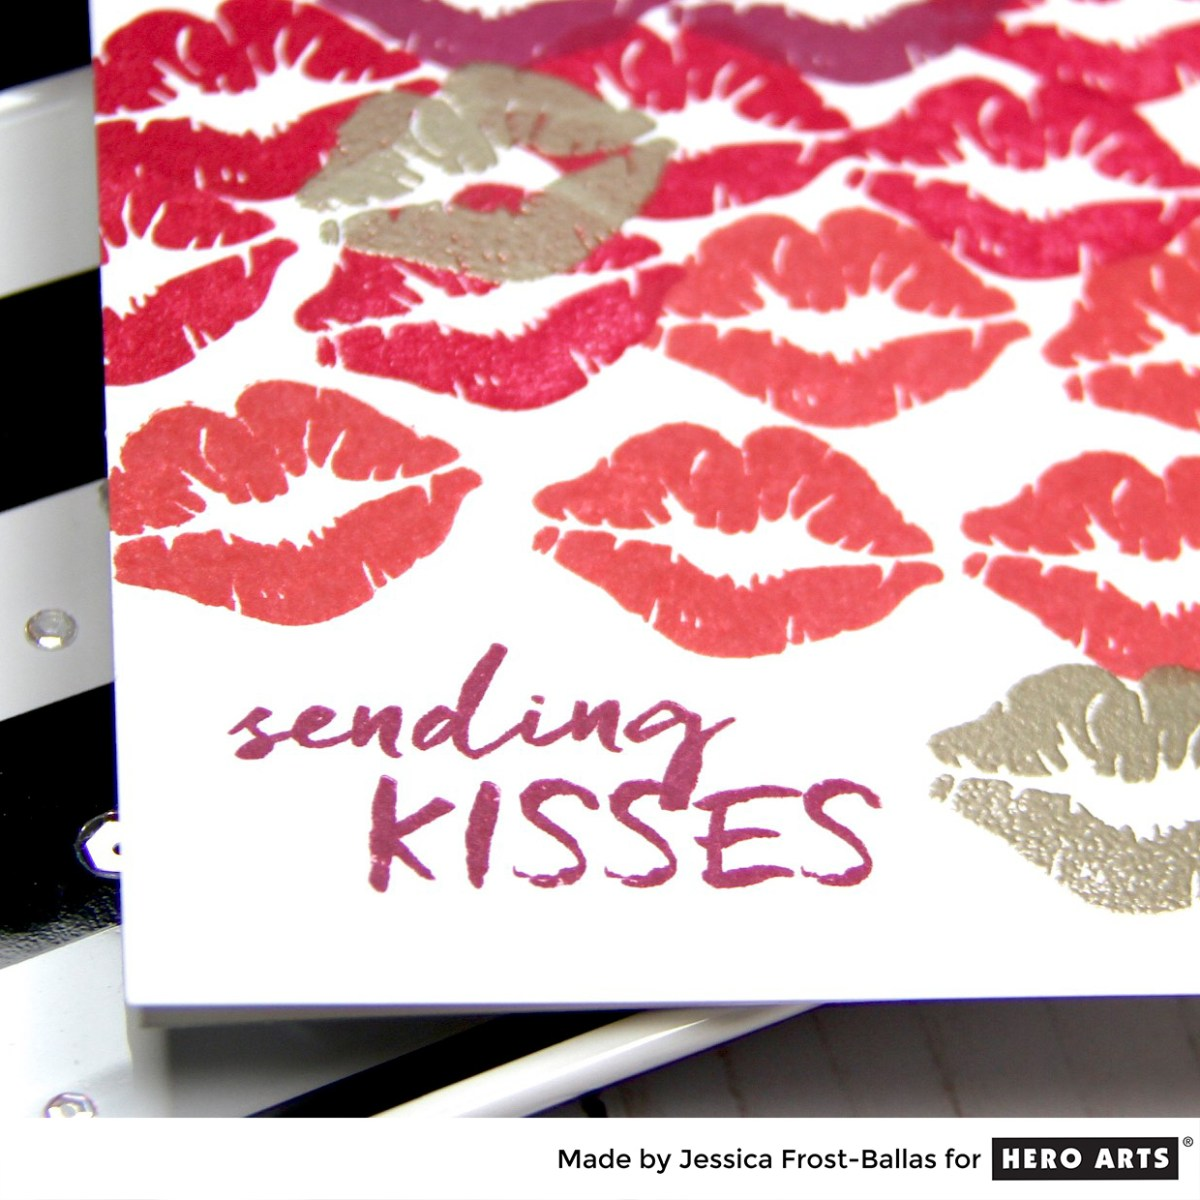 Sealed with a Kiss!